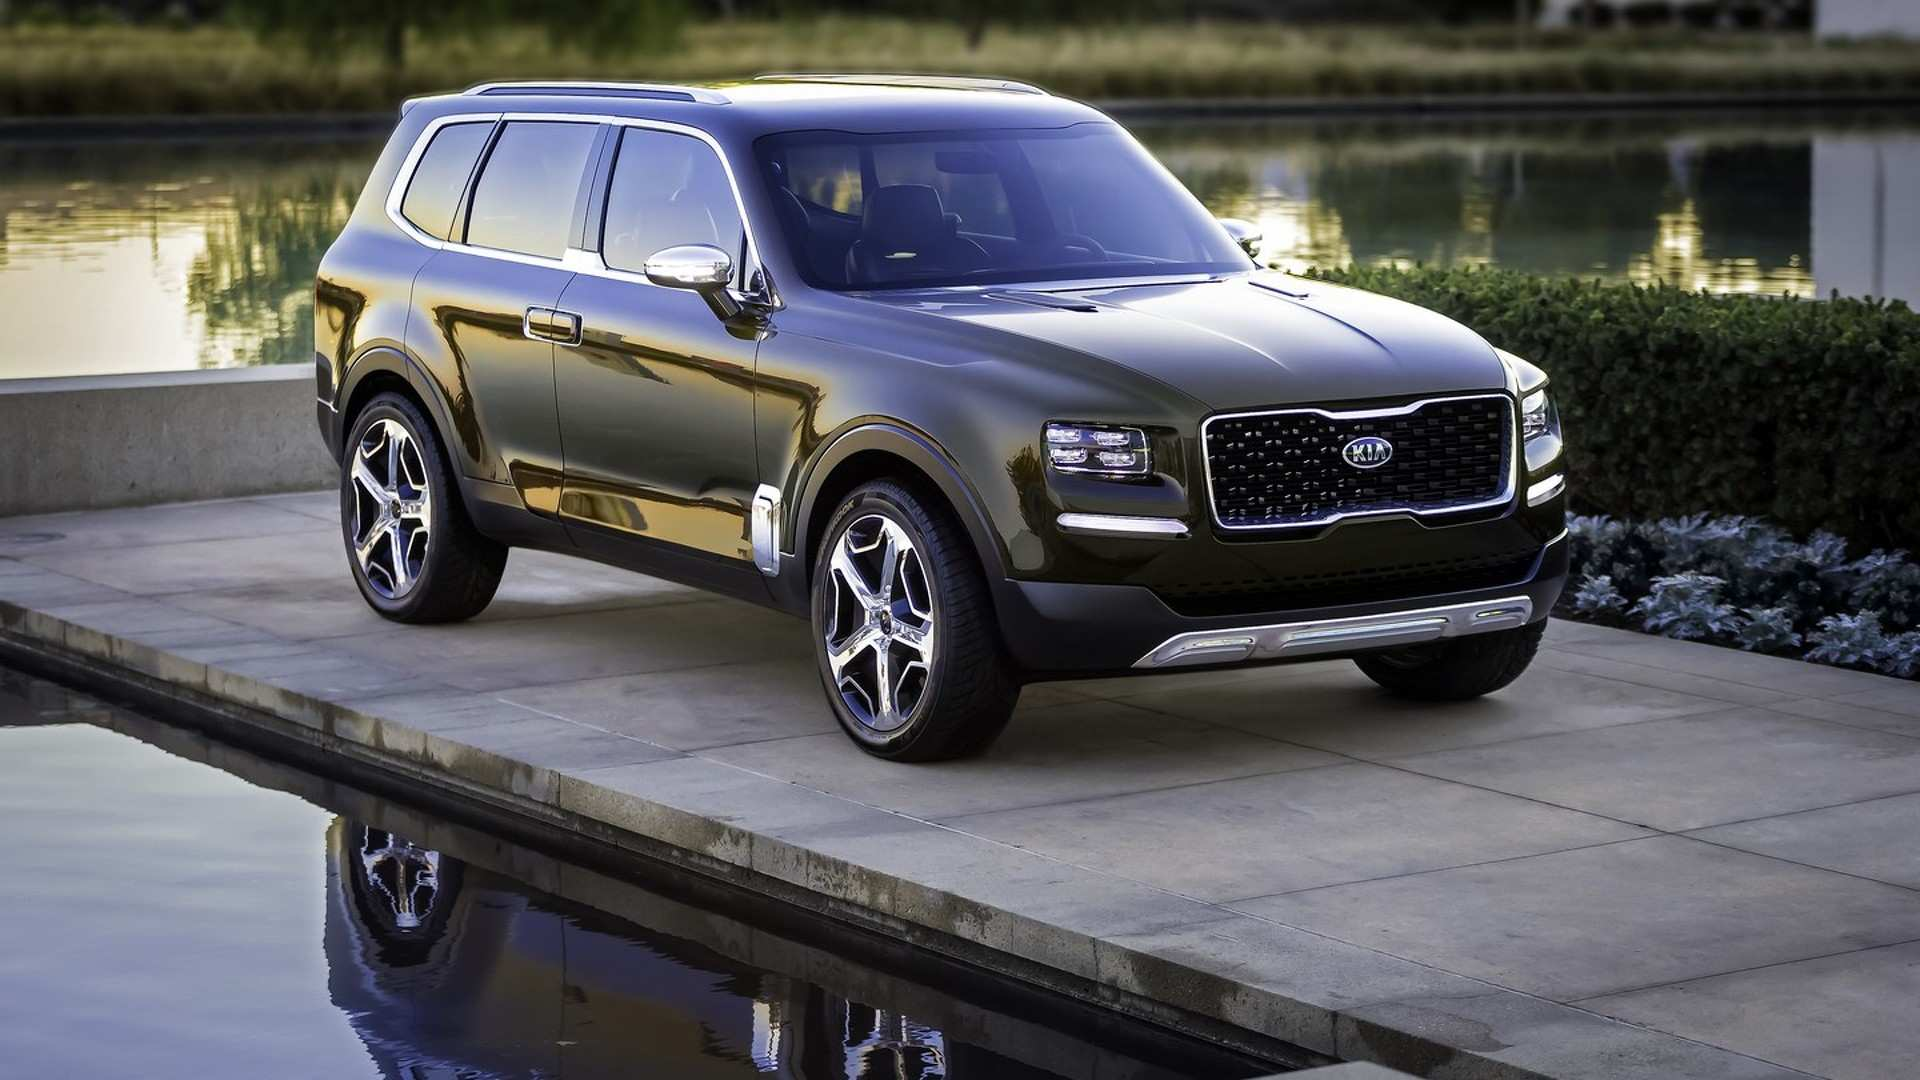 86 The Best Kia Large Suv 2020 Configurations